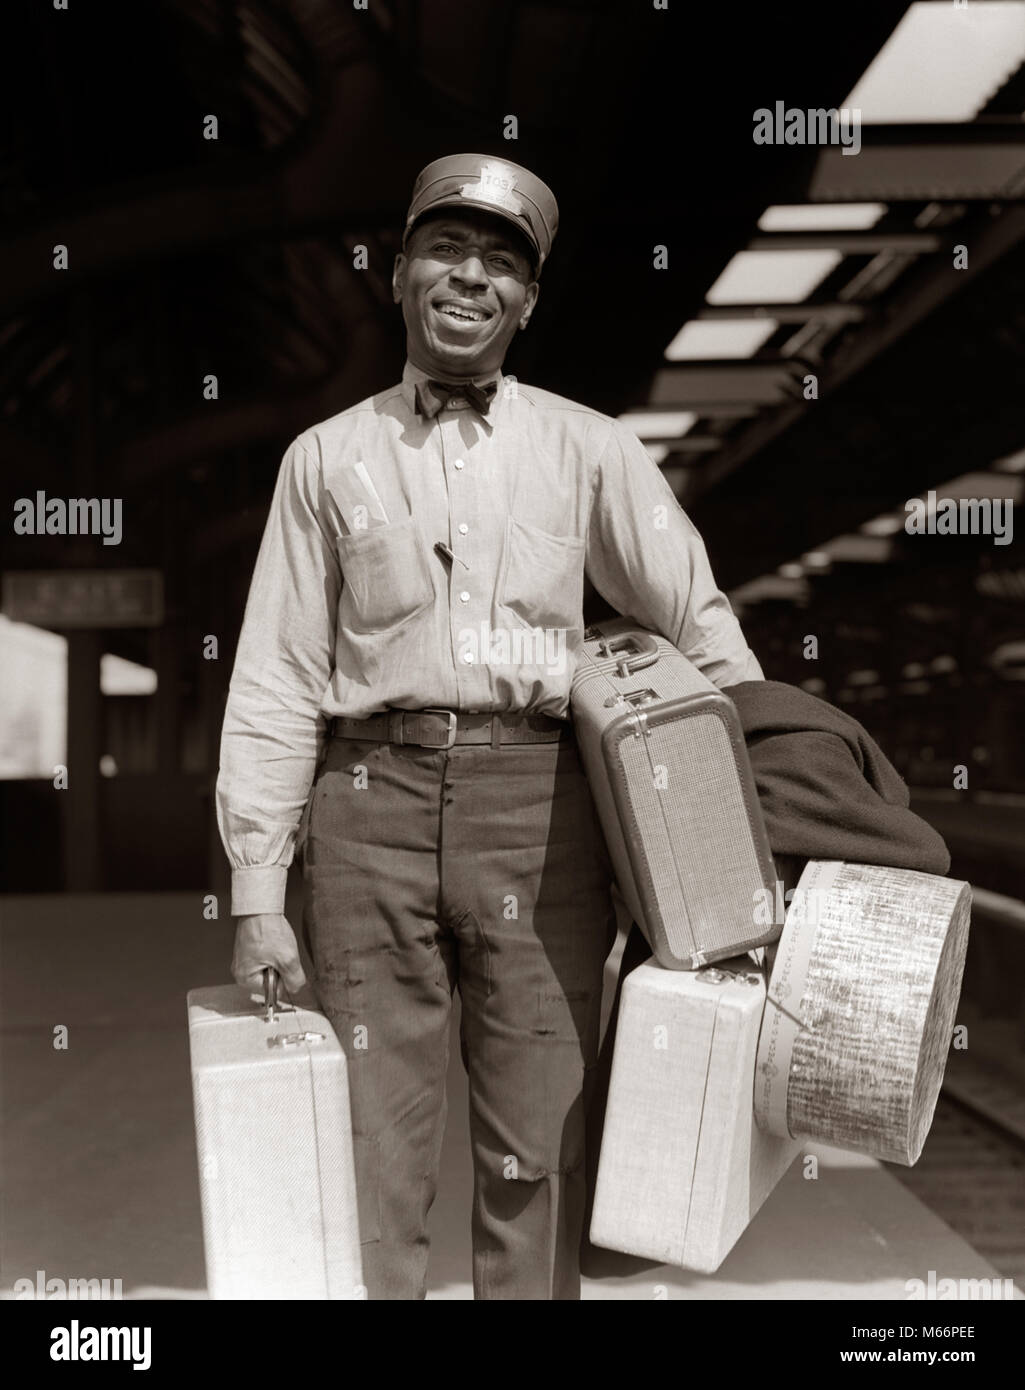 1930s 1940s SMILING AFRICAN AMERICAN MAN RAILROAD PASSENGER TRAIN RED CAP PORTER CARRYING LUGGAGE & SUITCASES - Stock Image